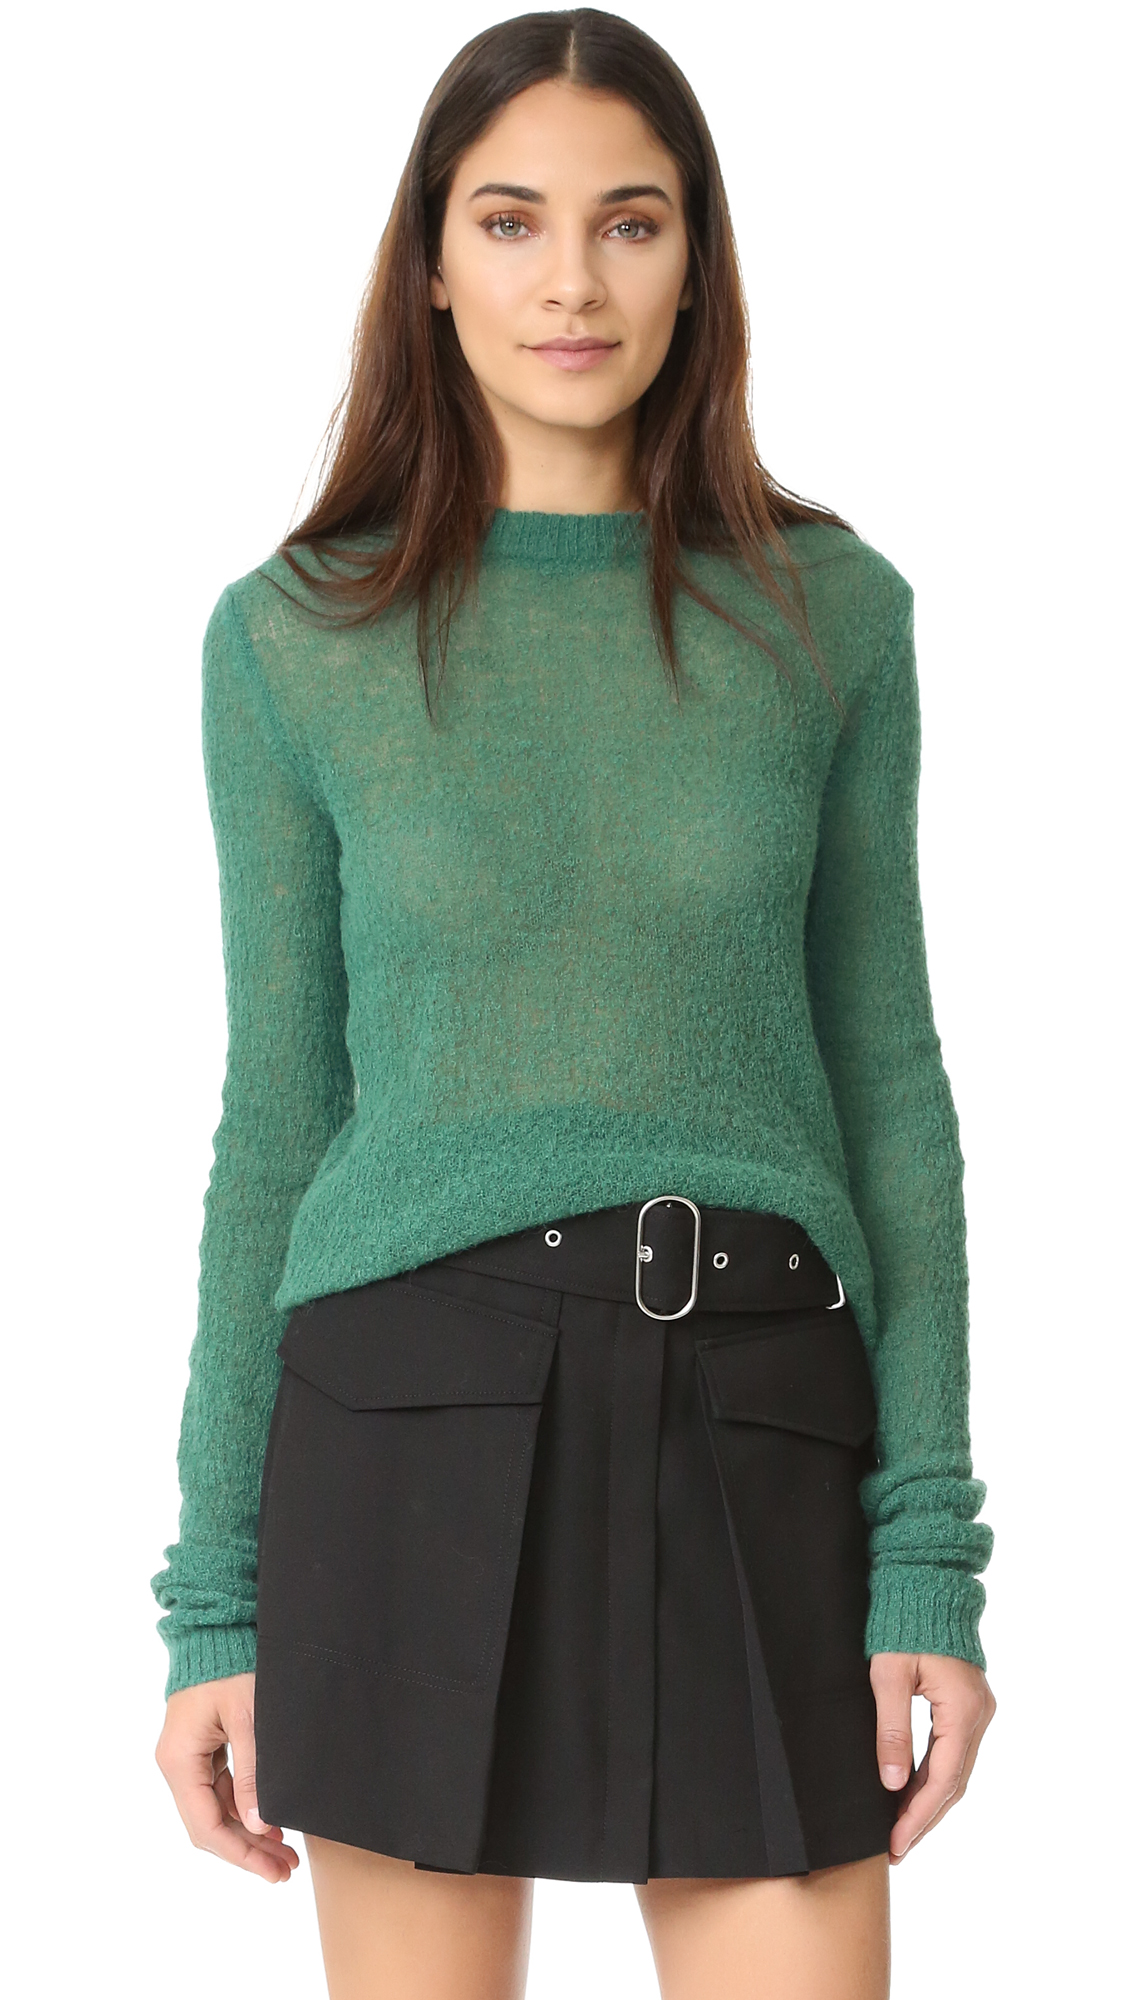 Acne Studios Trixie Alpaca Sweater - Forest Green at Shopbop